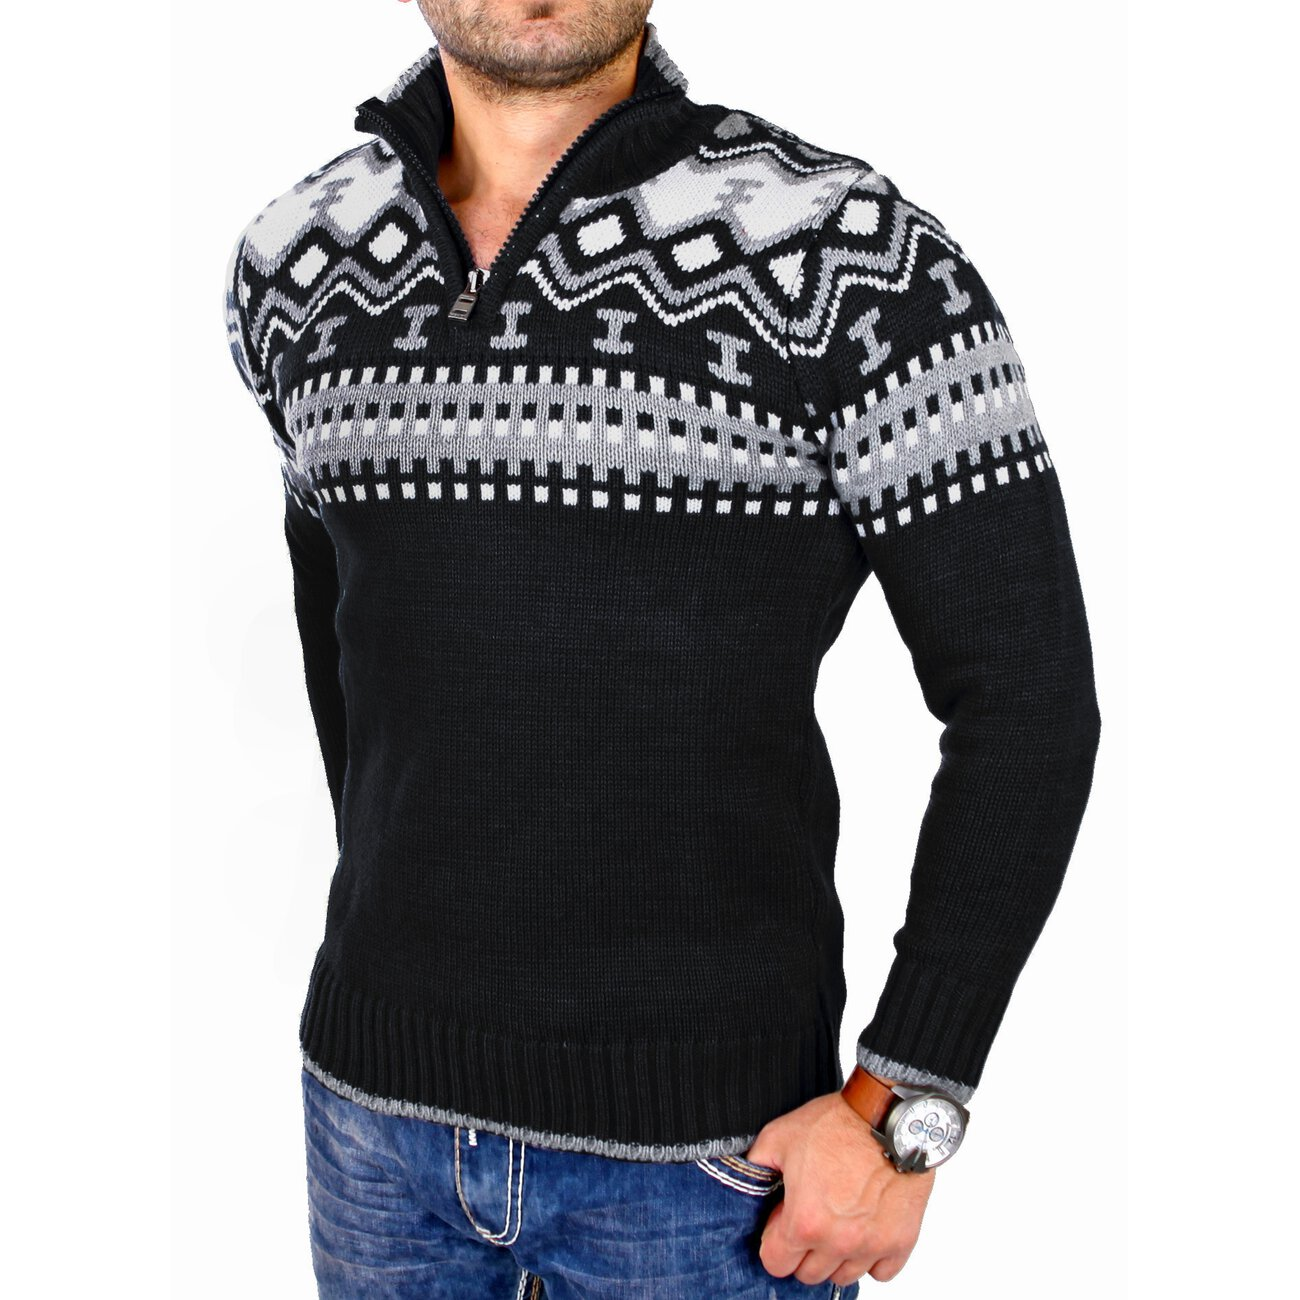 reslad norweger pullover f r herren mit zipper g nstig. Black Bedroom Furniture Sets. Home Design Ideas